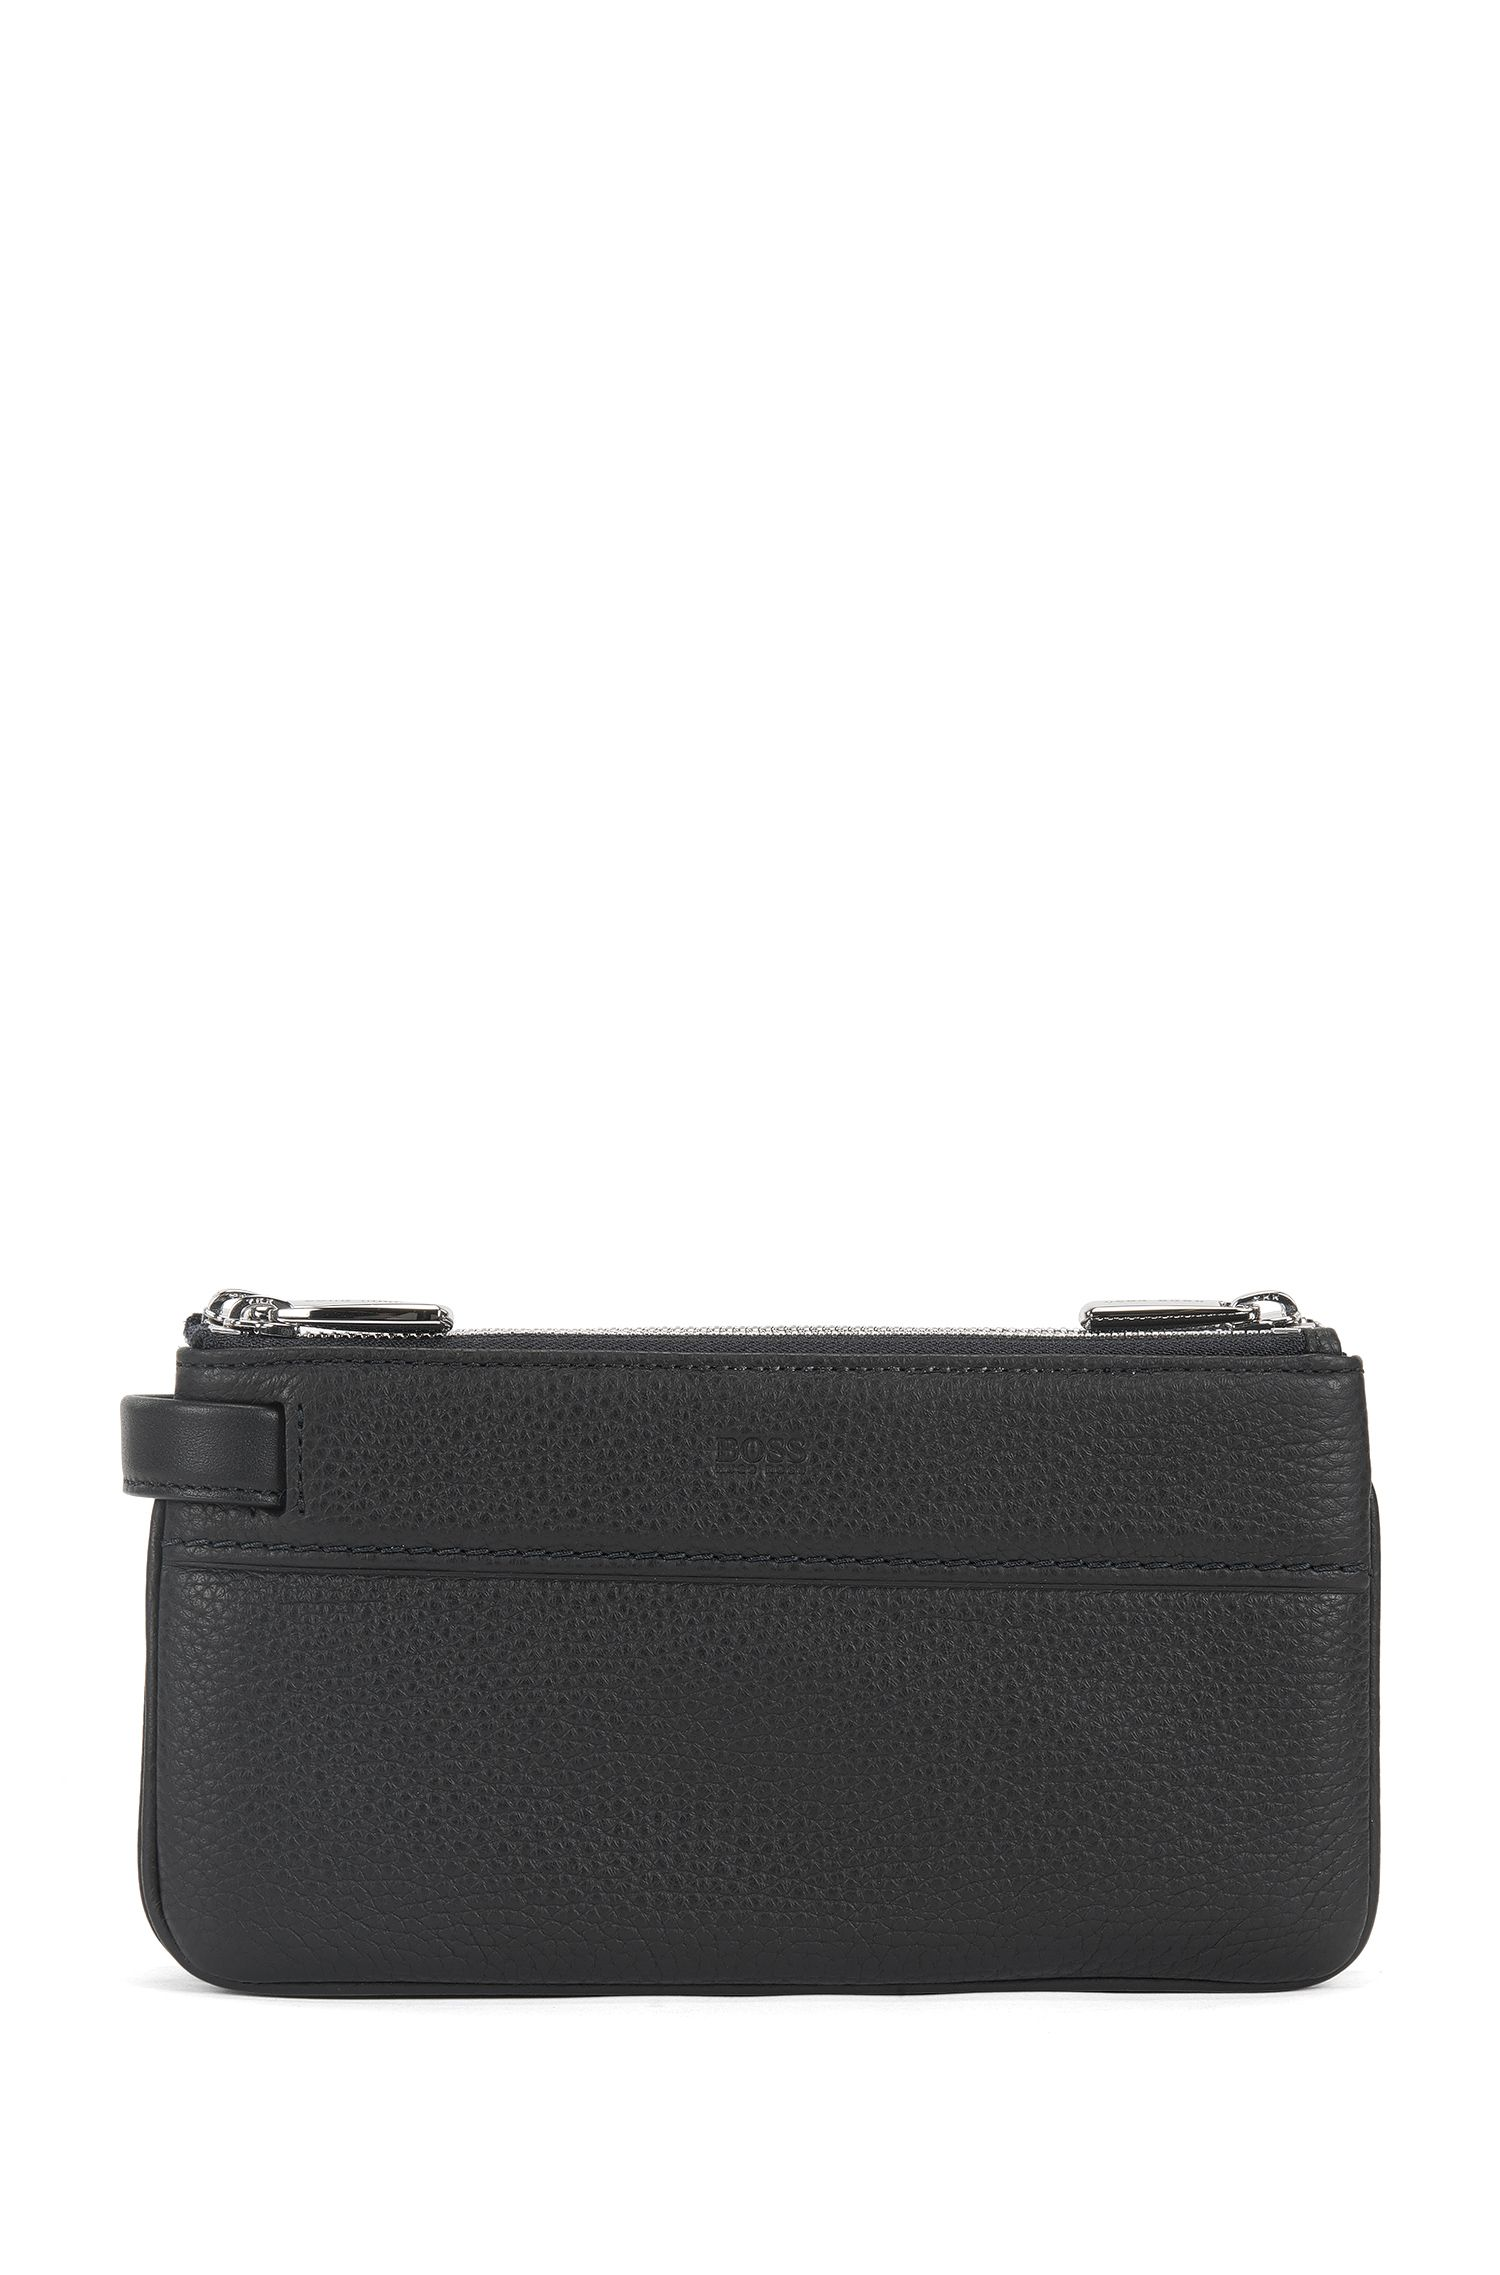 3-Zip Leather Bag | Traveller Z , Black